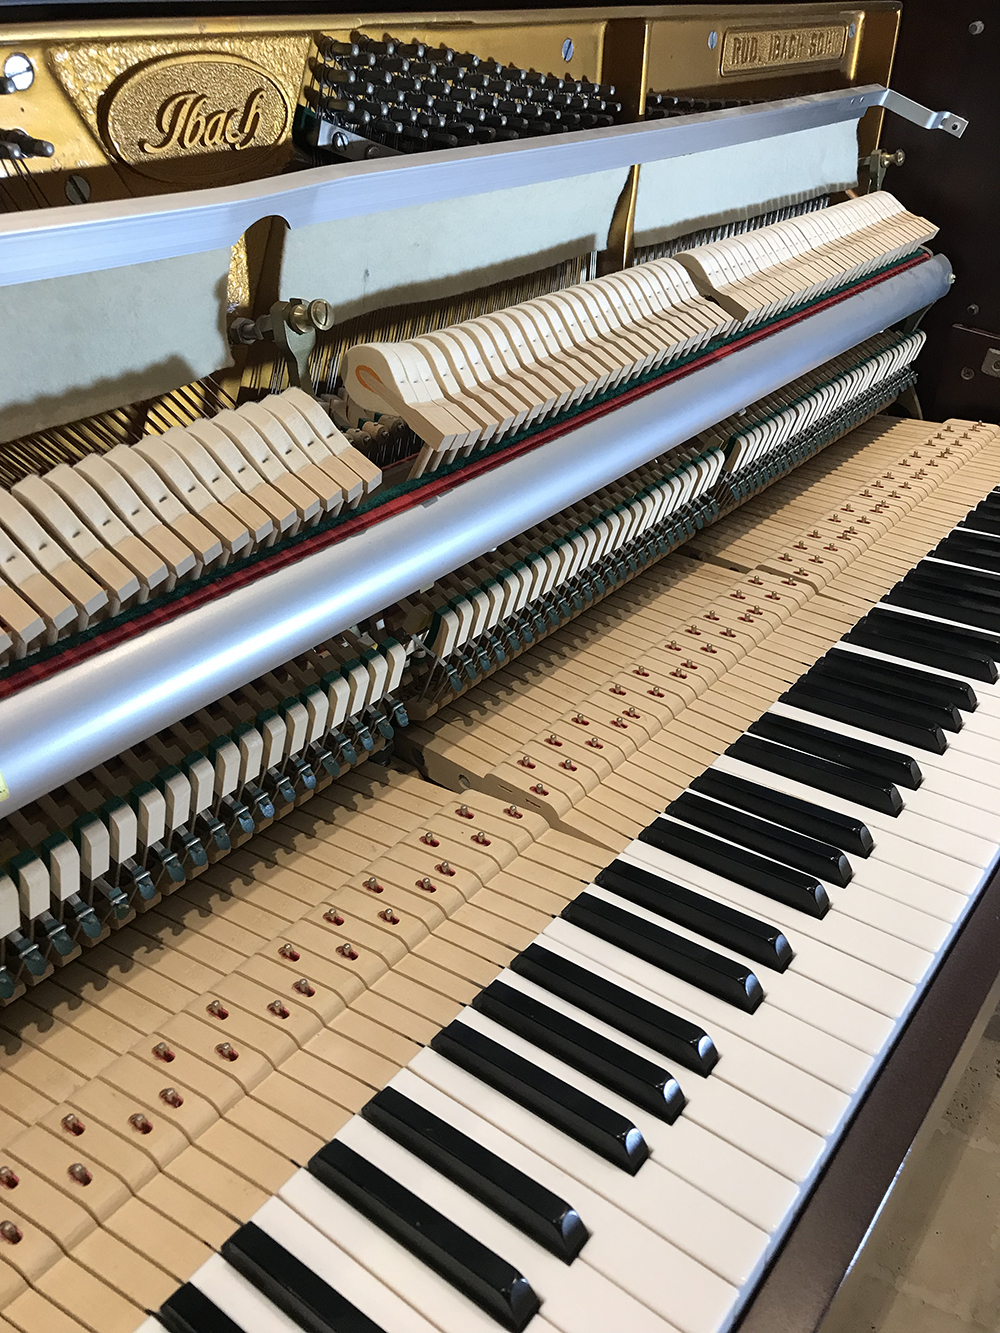 ibach-upright-quality-used-Piano-Dorset-4.jpg